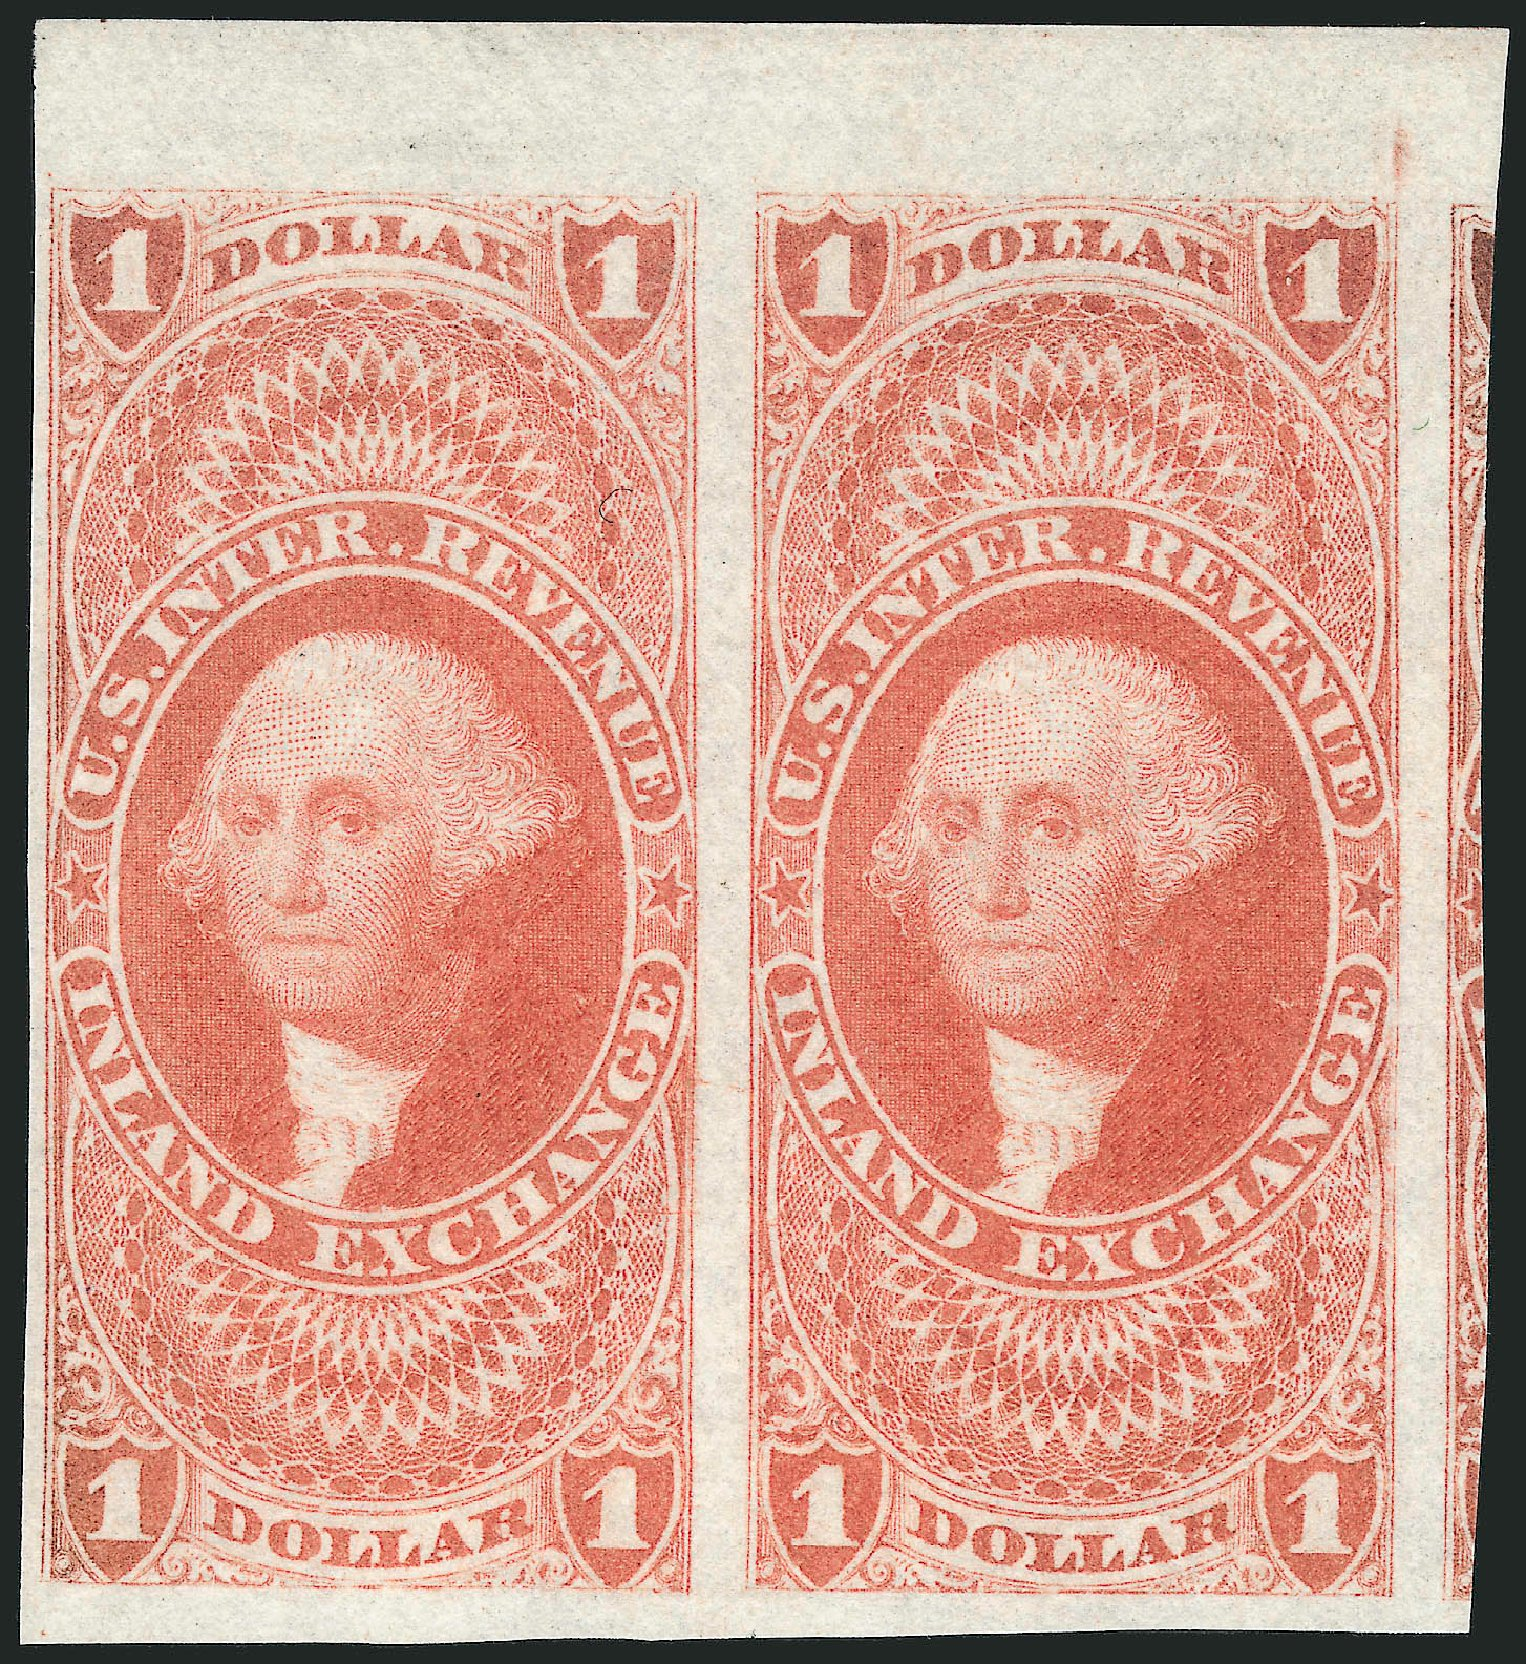 US Stamps Value Scott R69 - US$1.00 1862 Revenue Inland Exchange. Robert Siegel Auction Galleries, Mar 2014, Sale 1066, Lot 19